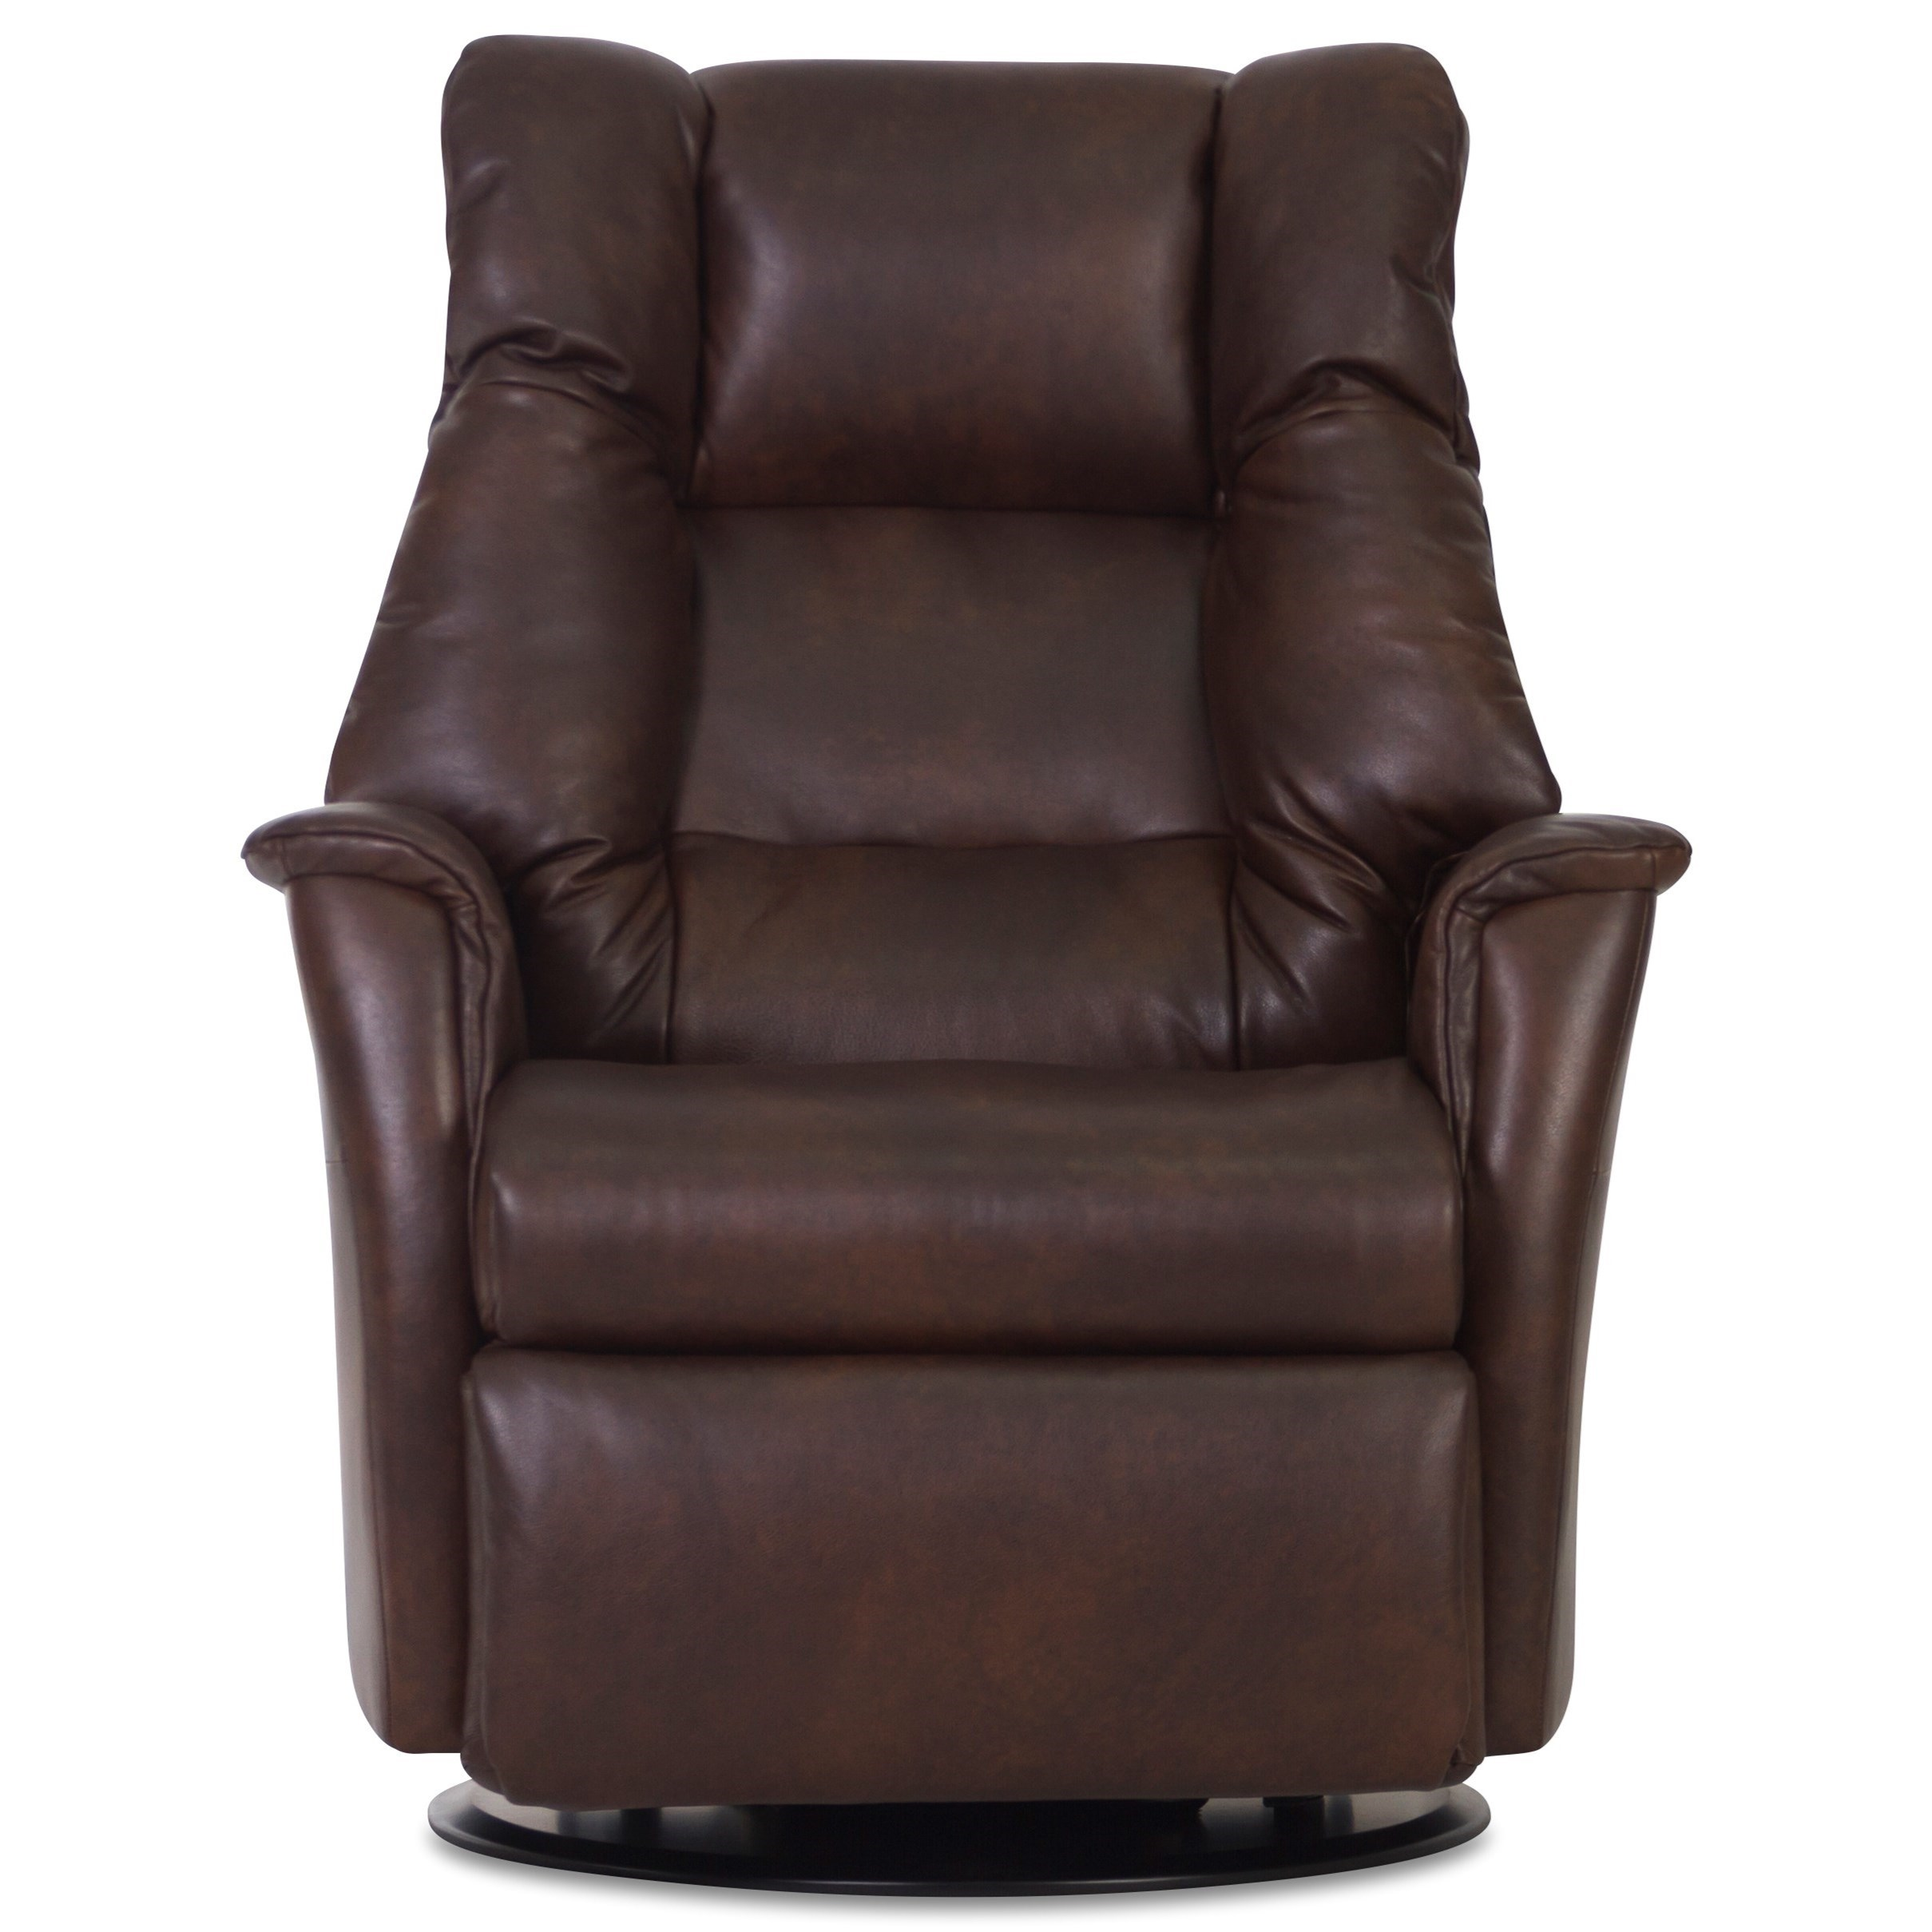 Divani Relaxer Chair Recliners Modern Verona Recliner Relaxer With Swivel Base By Vendor 508 At Becker Furniture World